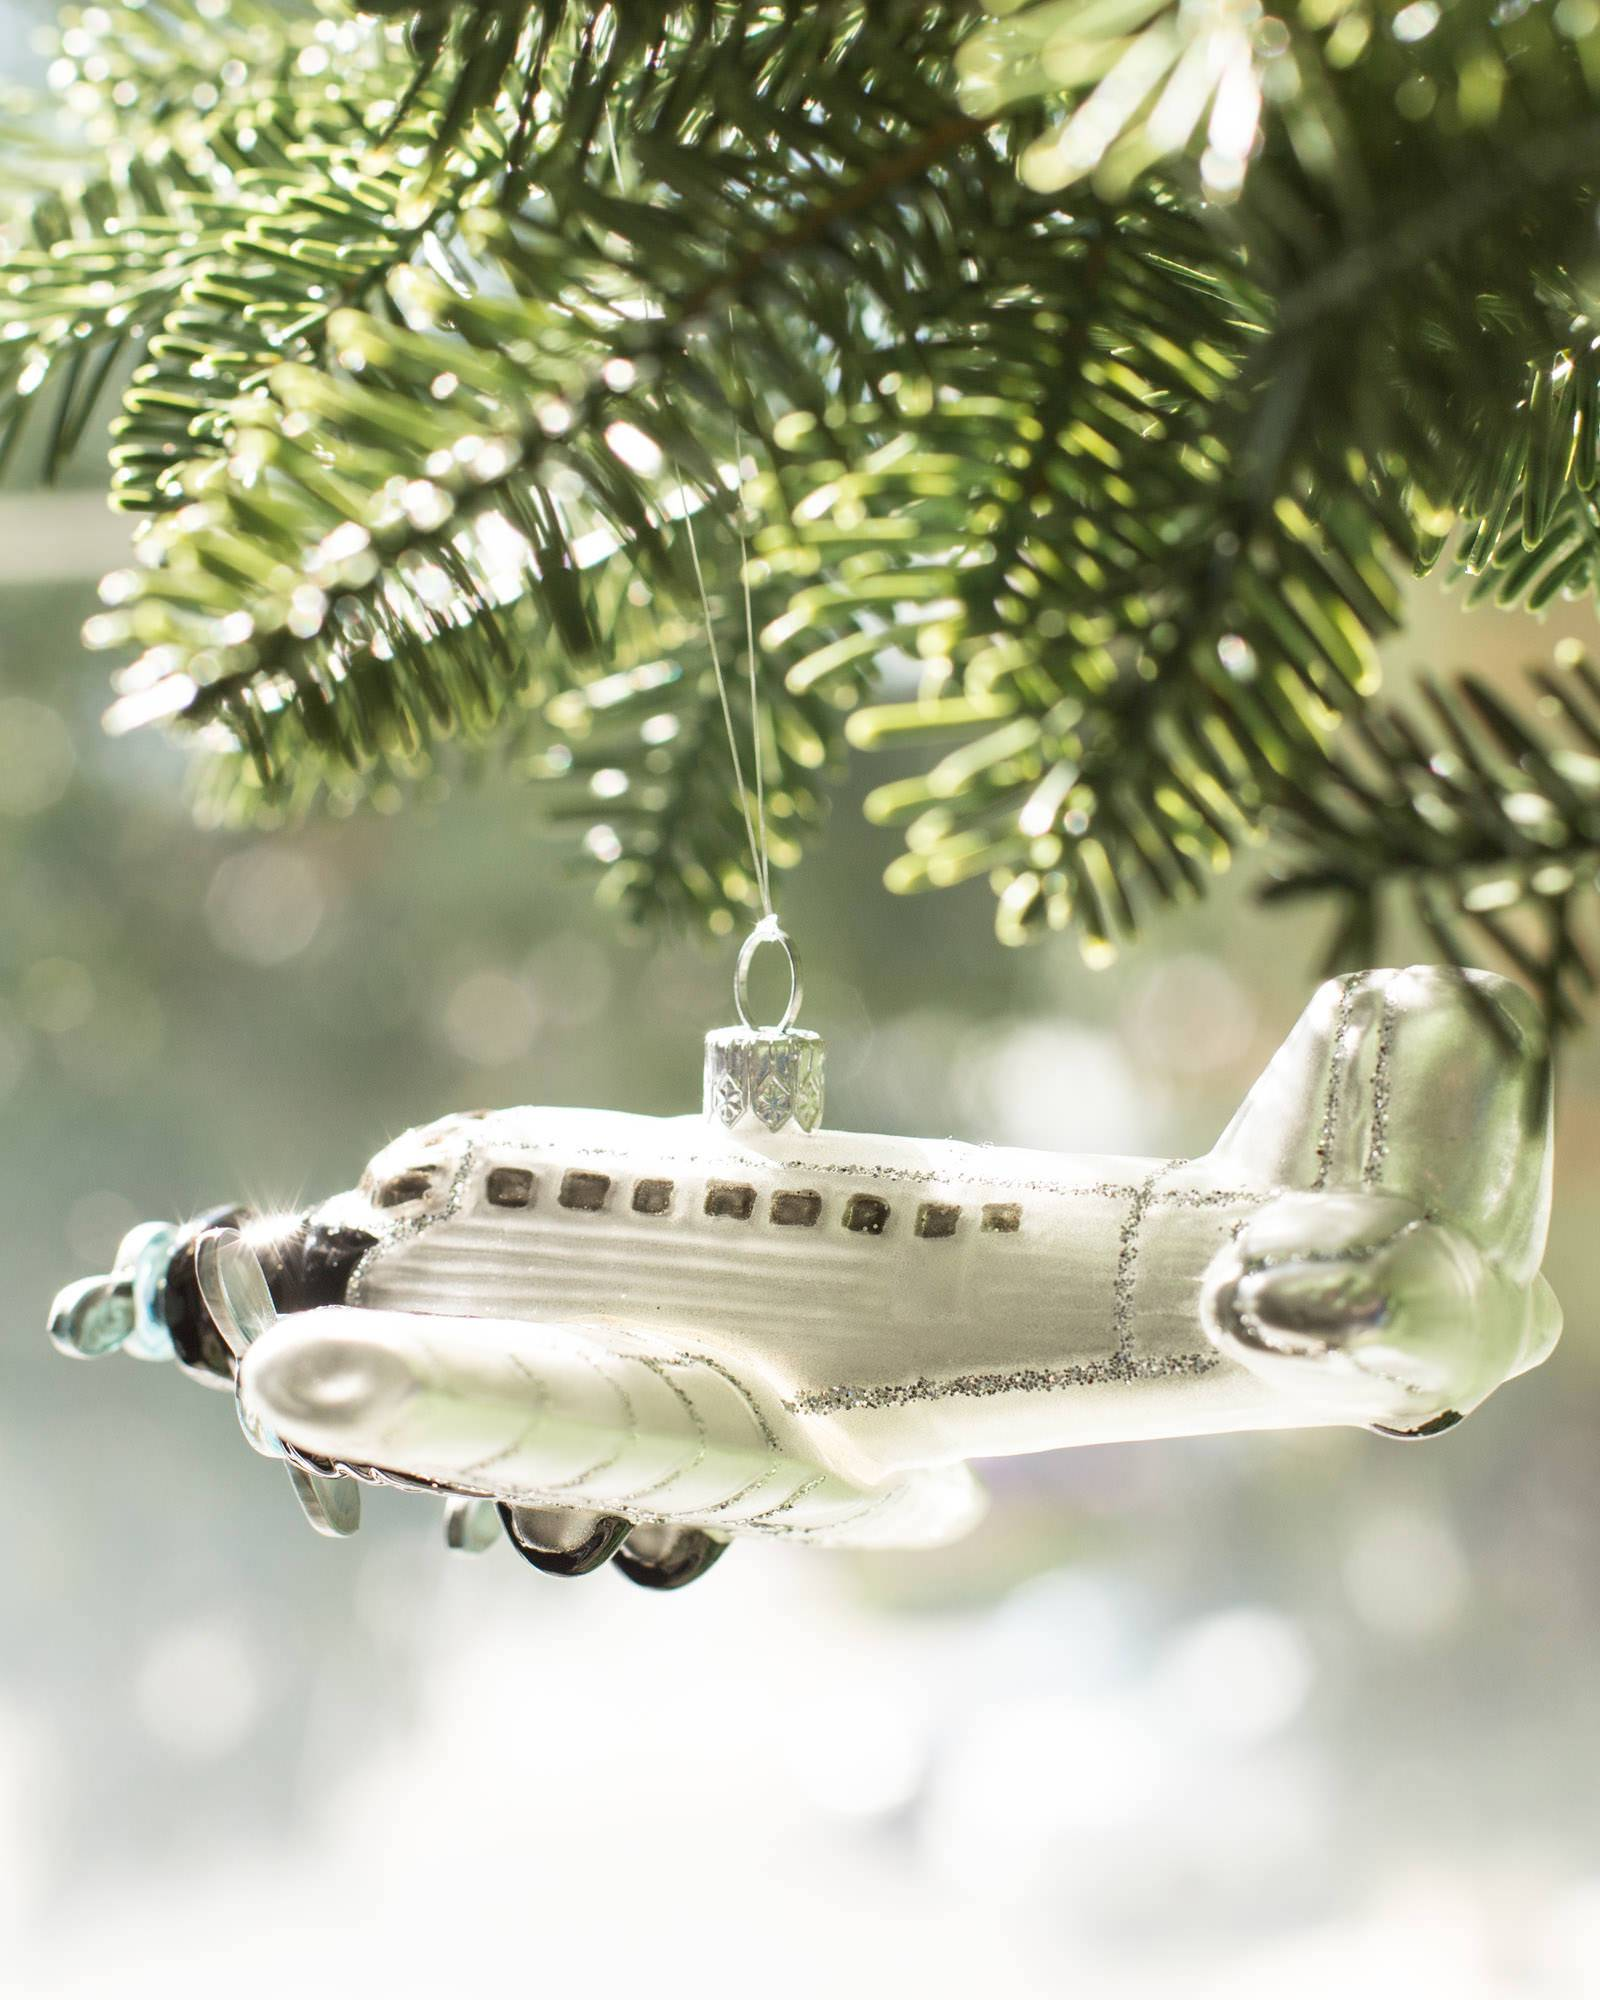 Christmas Ornaments Online Shopping Europe: European Vintage Travel Glass Ornaments